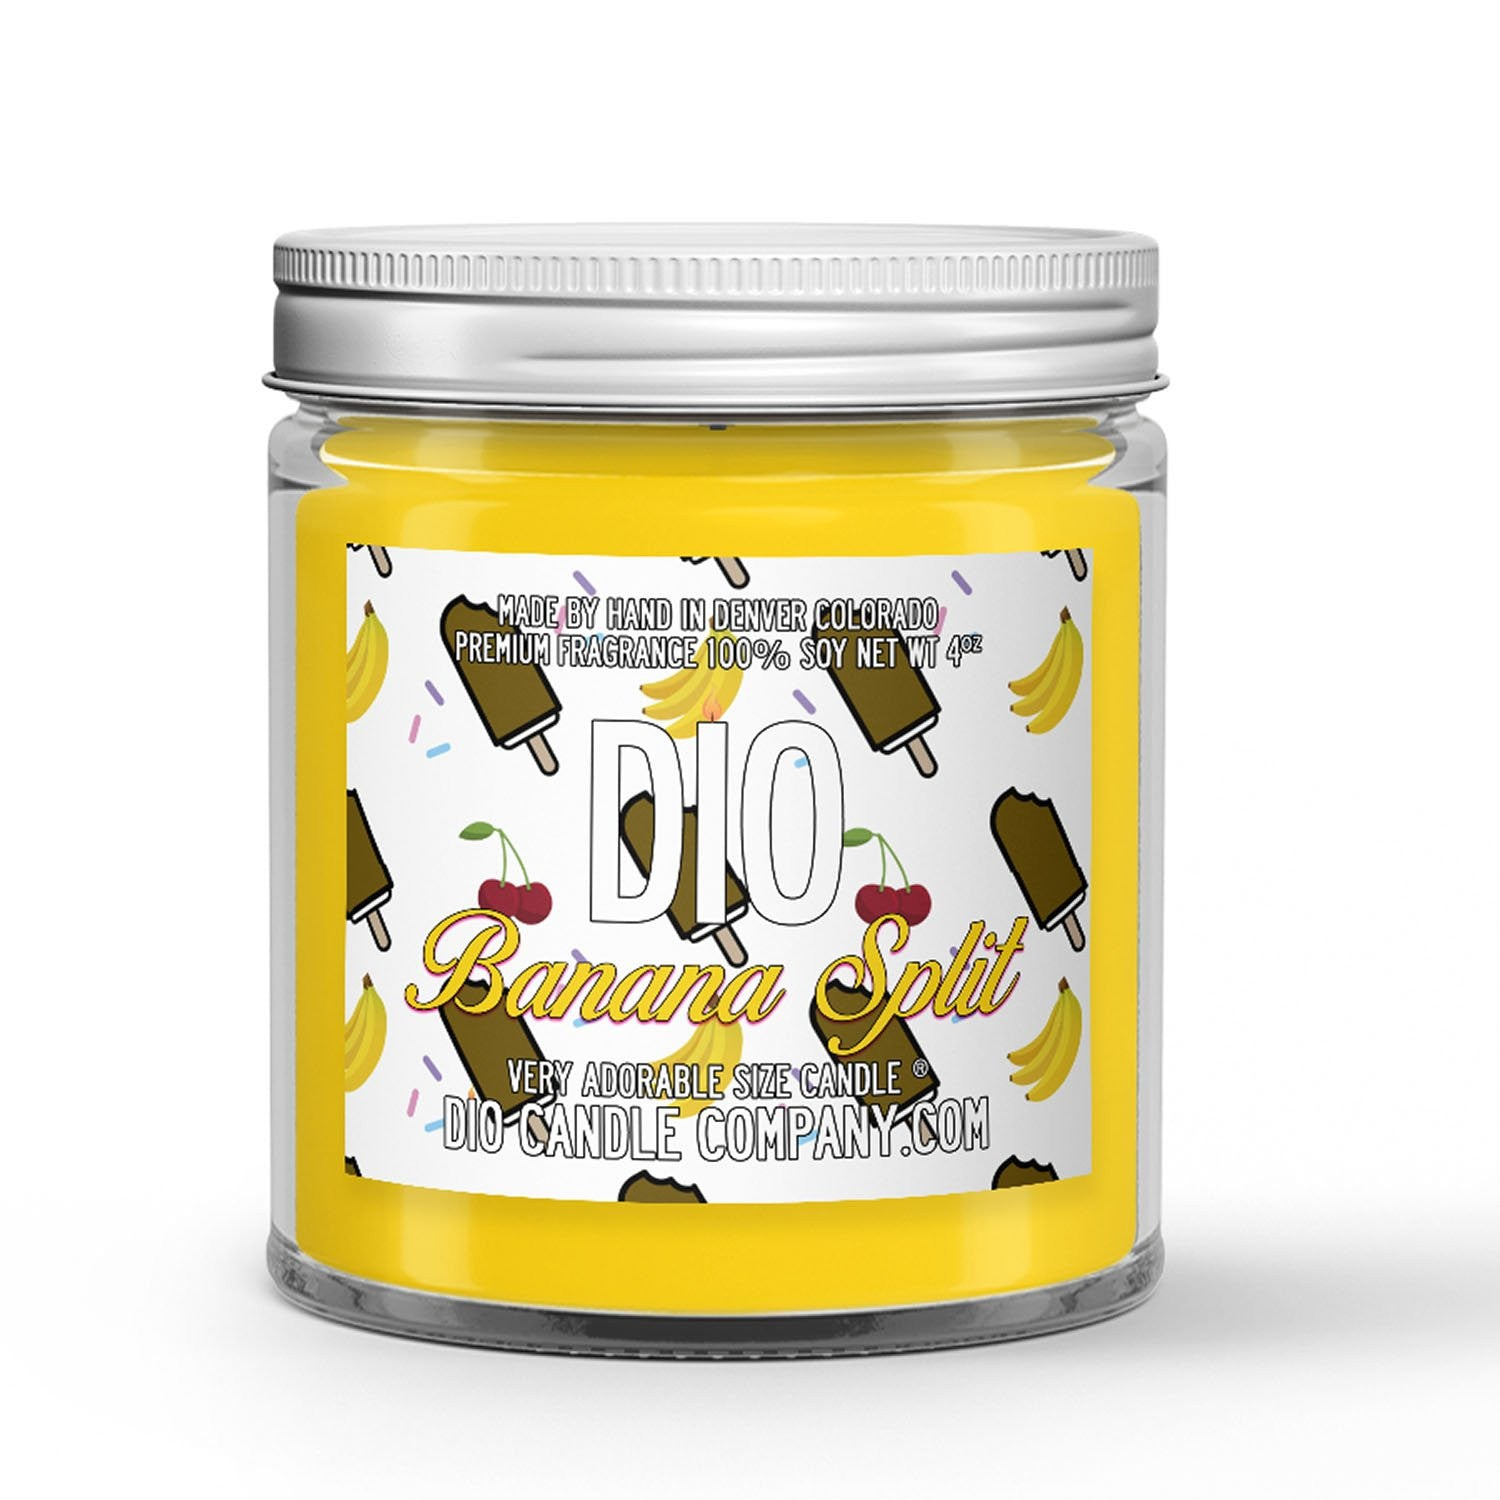 Banana Split Ice Cream Candle Banana Split Sundae Scented - Dio Candle Company